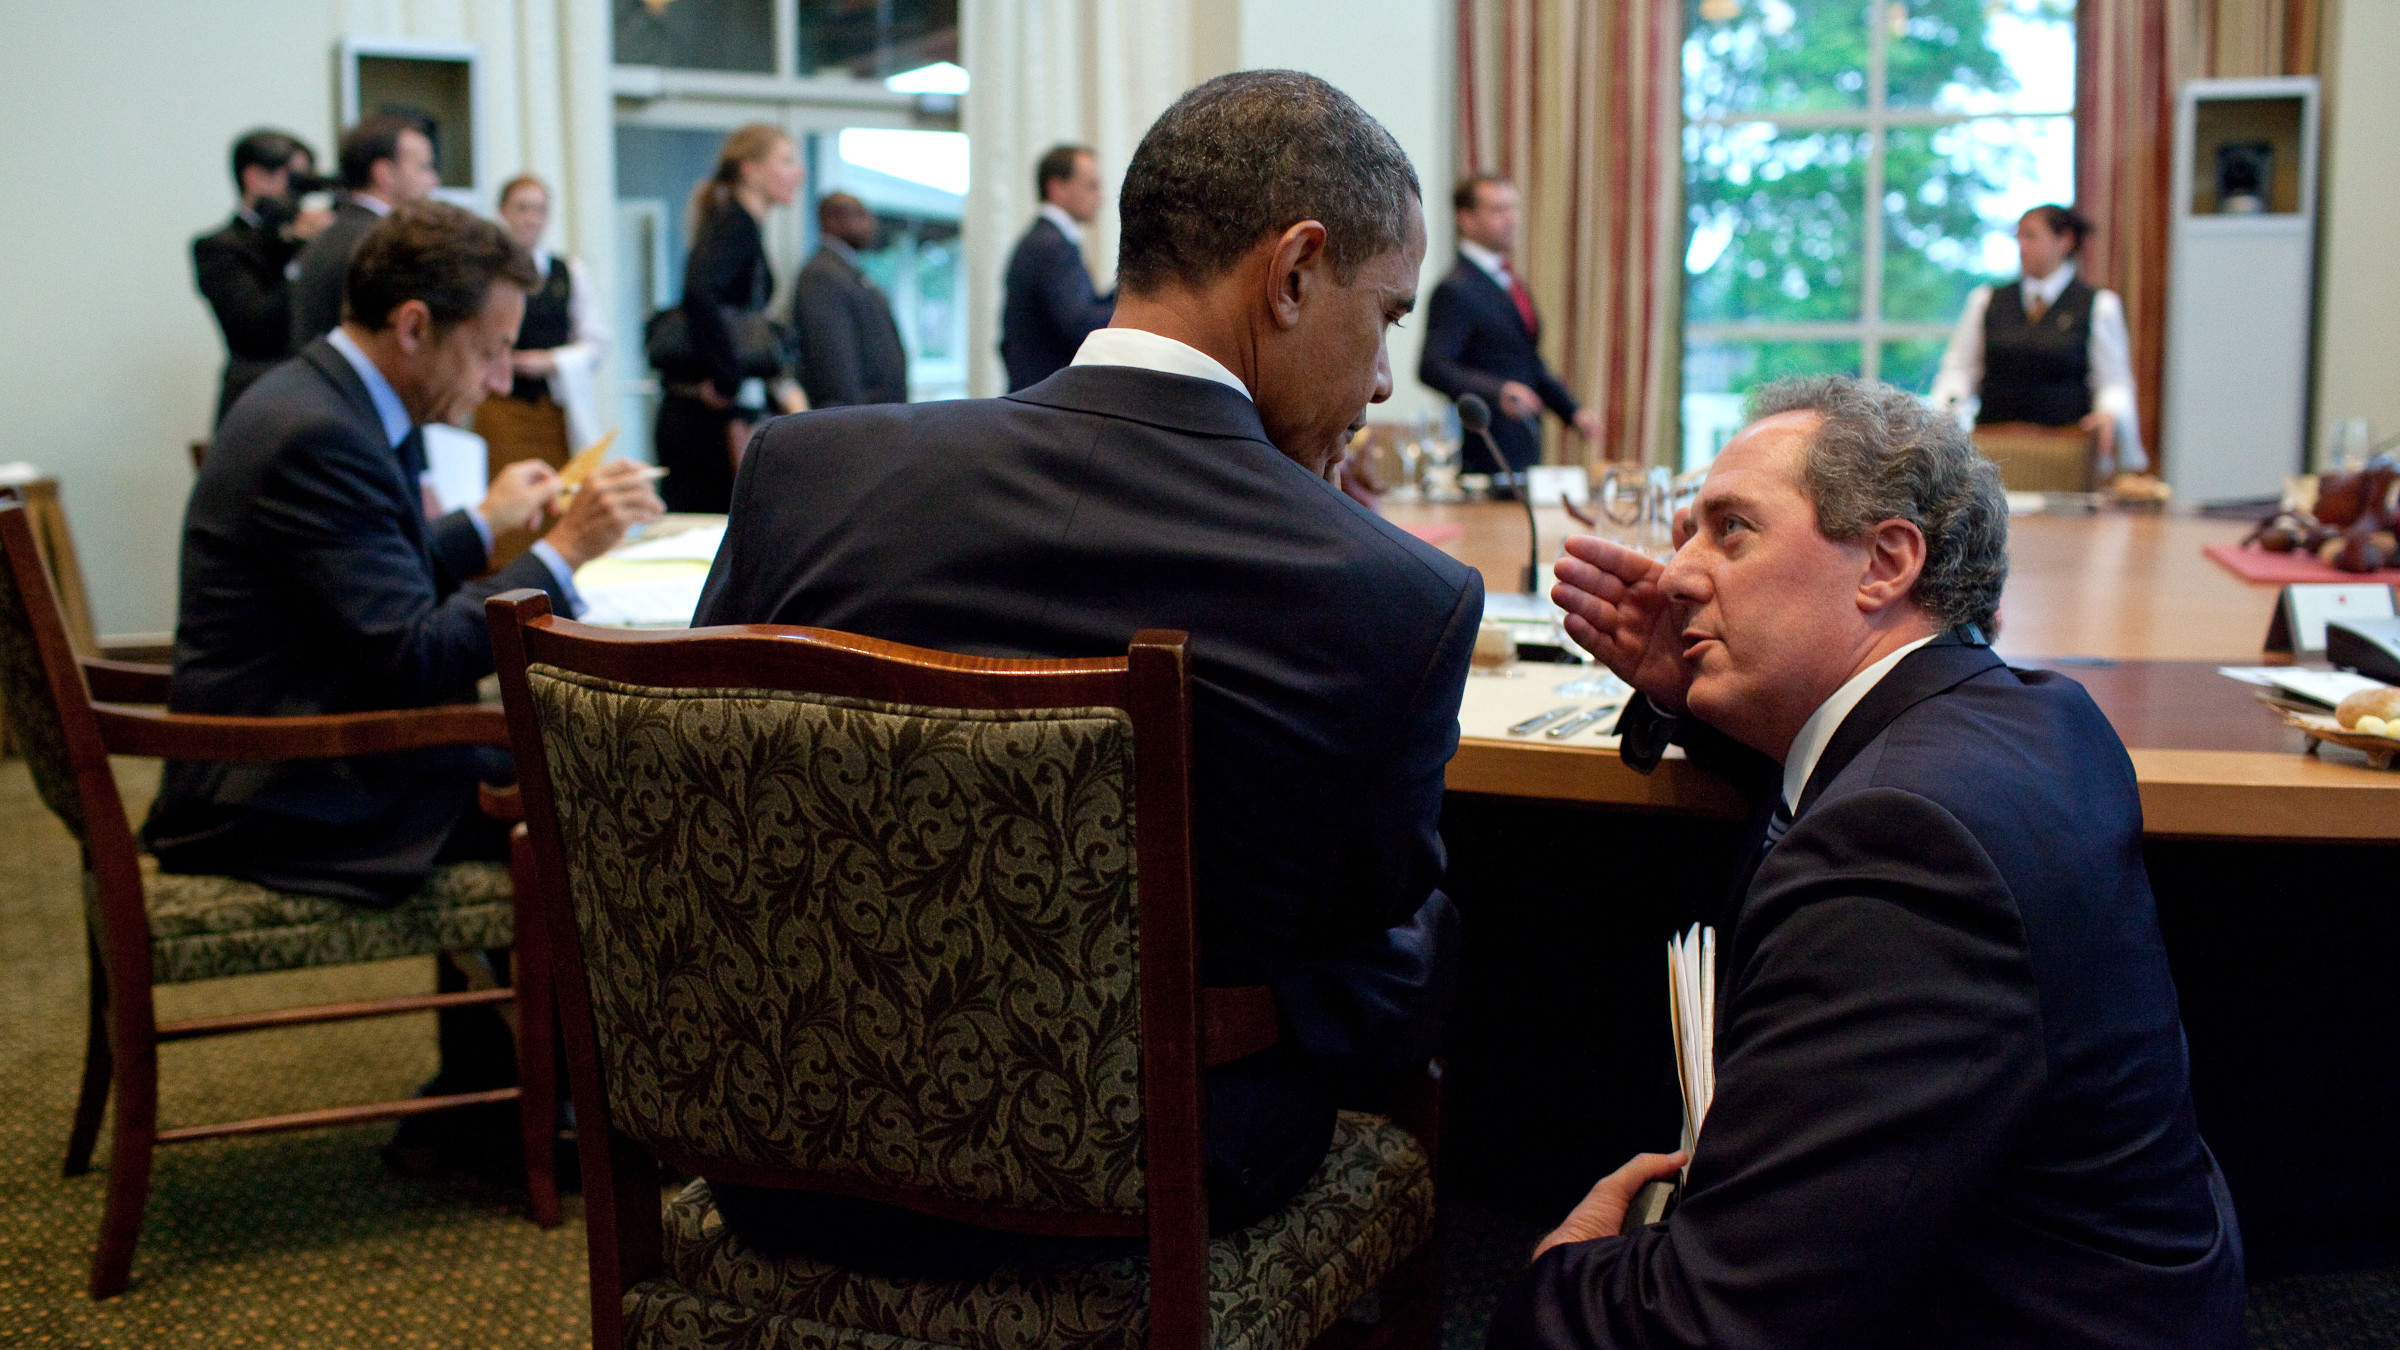 President Barack Obama talks with Michael Froman at the Working Dinner at the G8 Summit at the Deerhurst Resort in Muskoka, Canada, June 25, 2010.